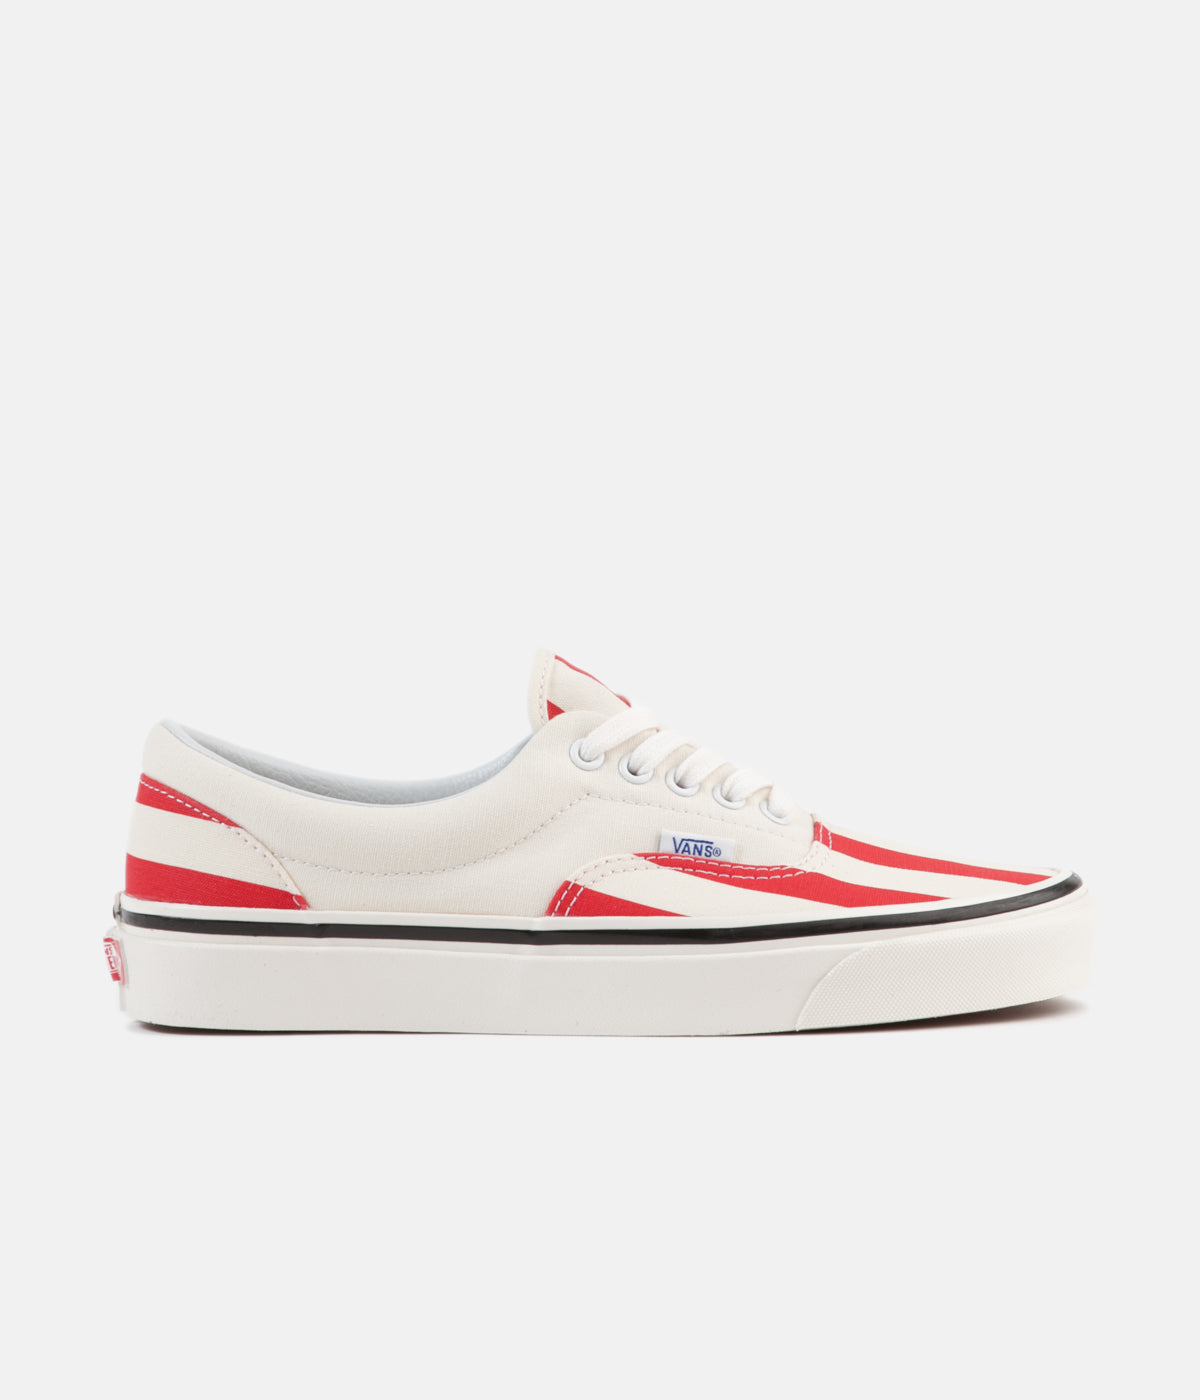 1cb5adcf61 Vans Era 95 DX Anaheim Factory Shoes - OG White   OG Red   Big Stripes